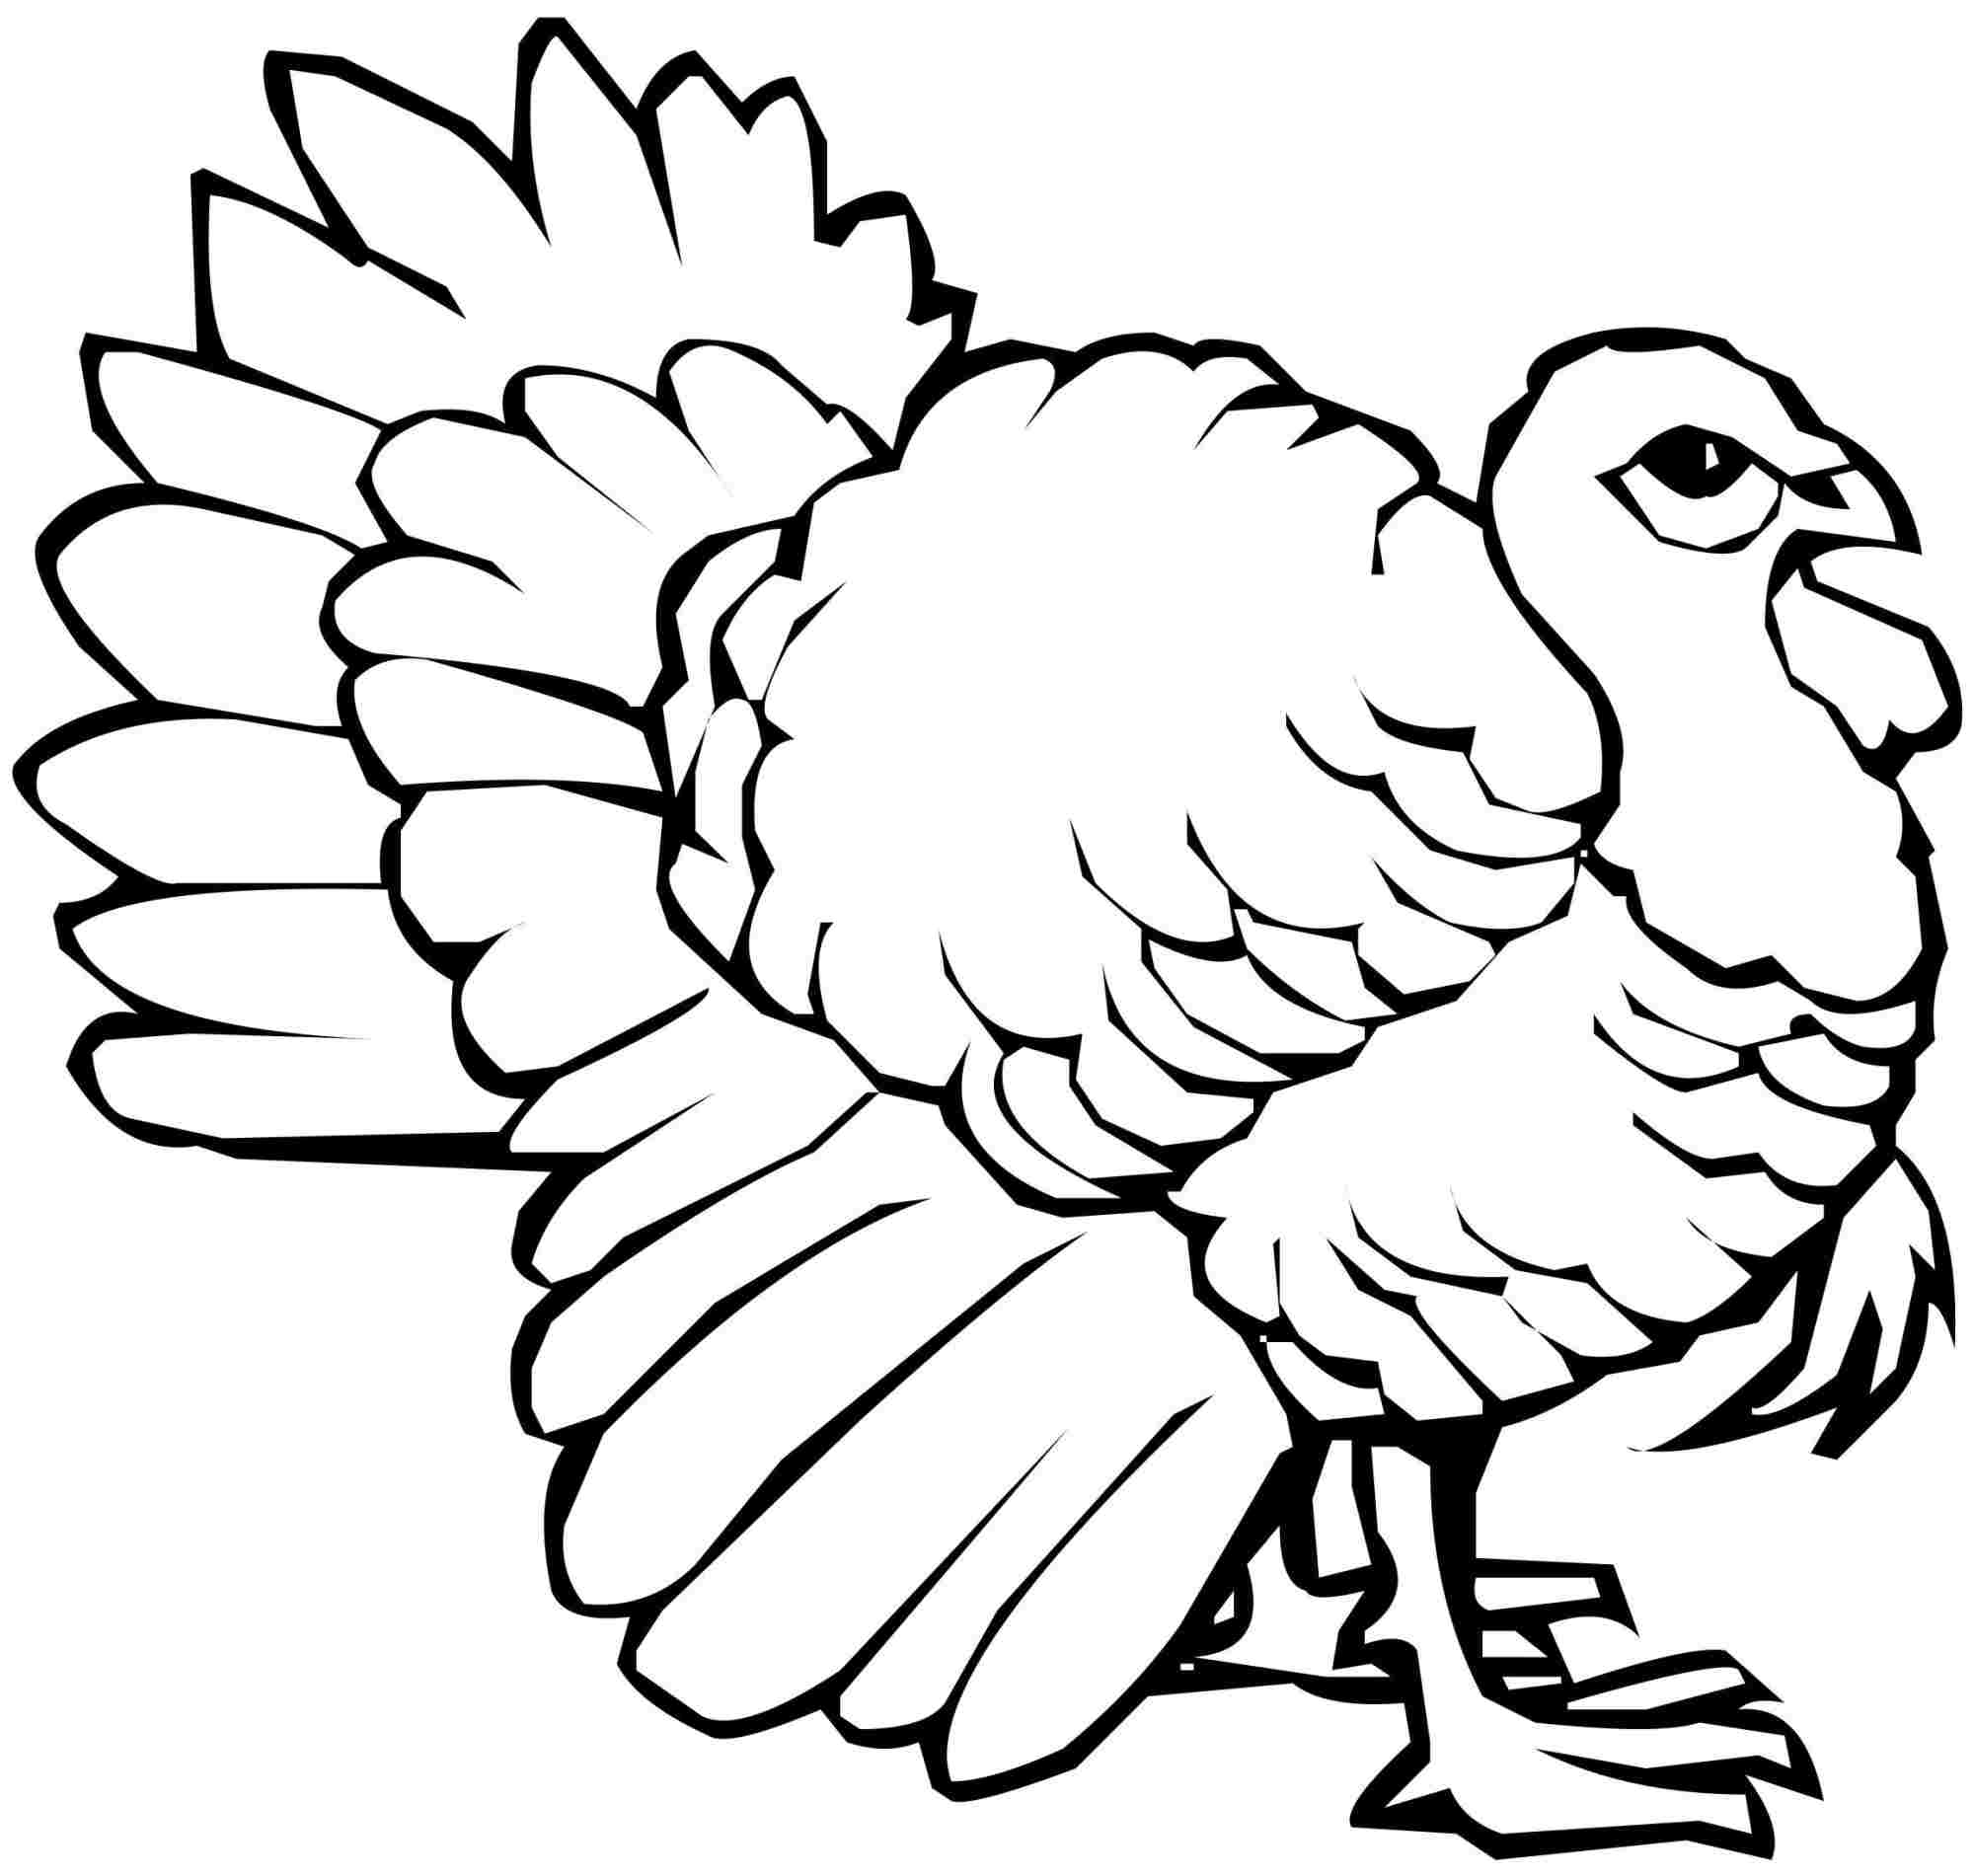 2000x1901 Thanksgiving Day Coloring Pages For Childrens Printable For Free